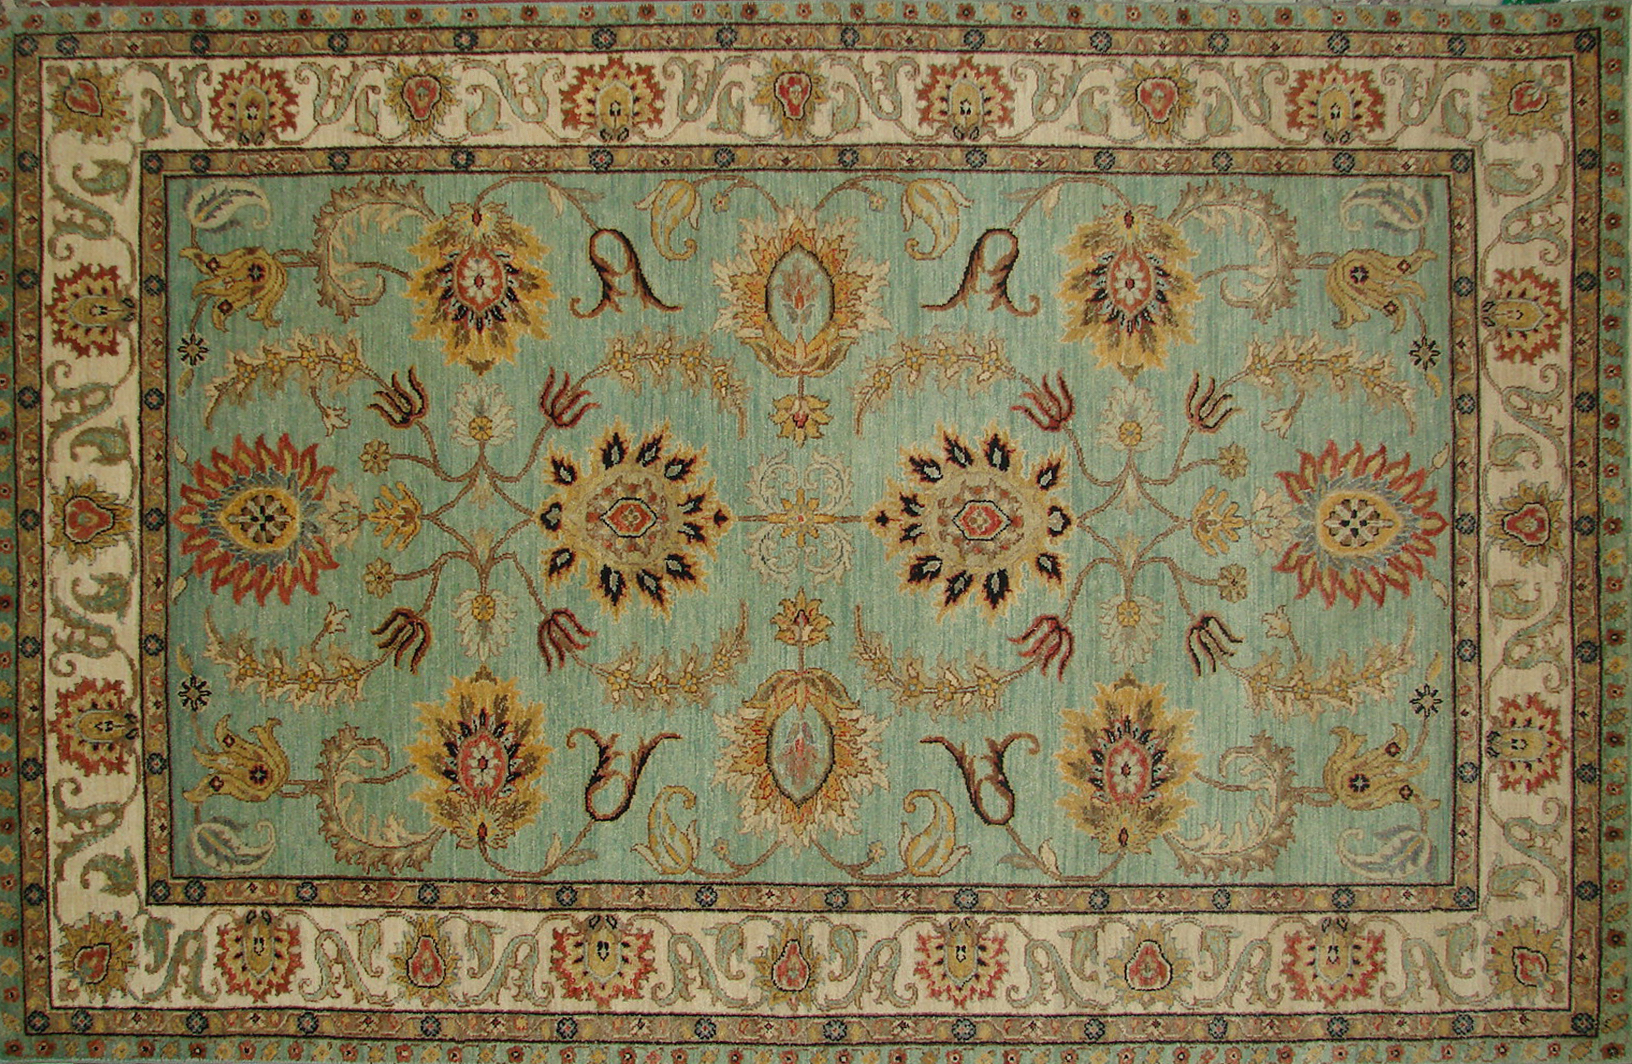 5x7/8 Traditional Hand Knotted Wool Area Rug - MR18968